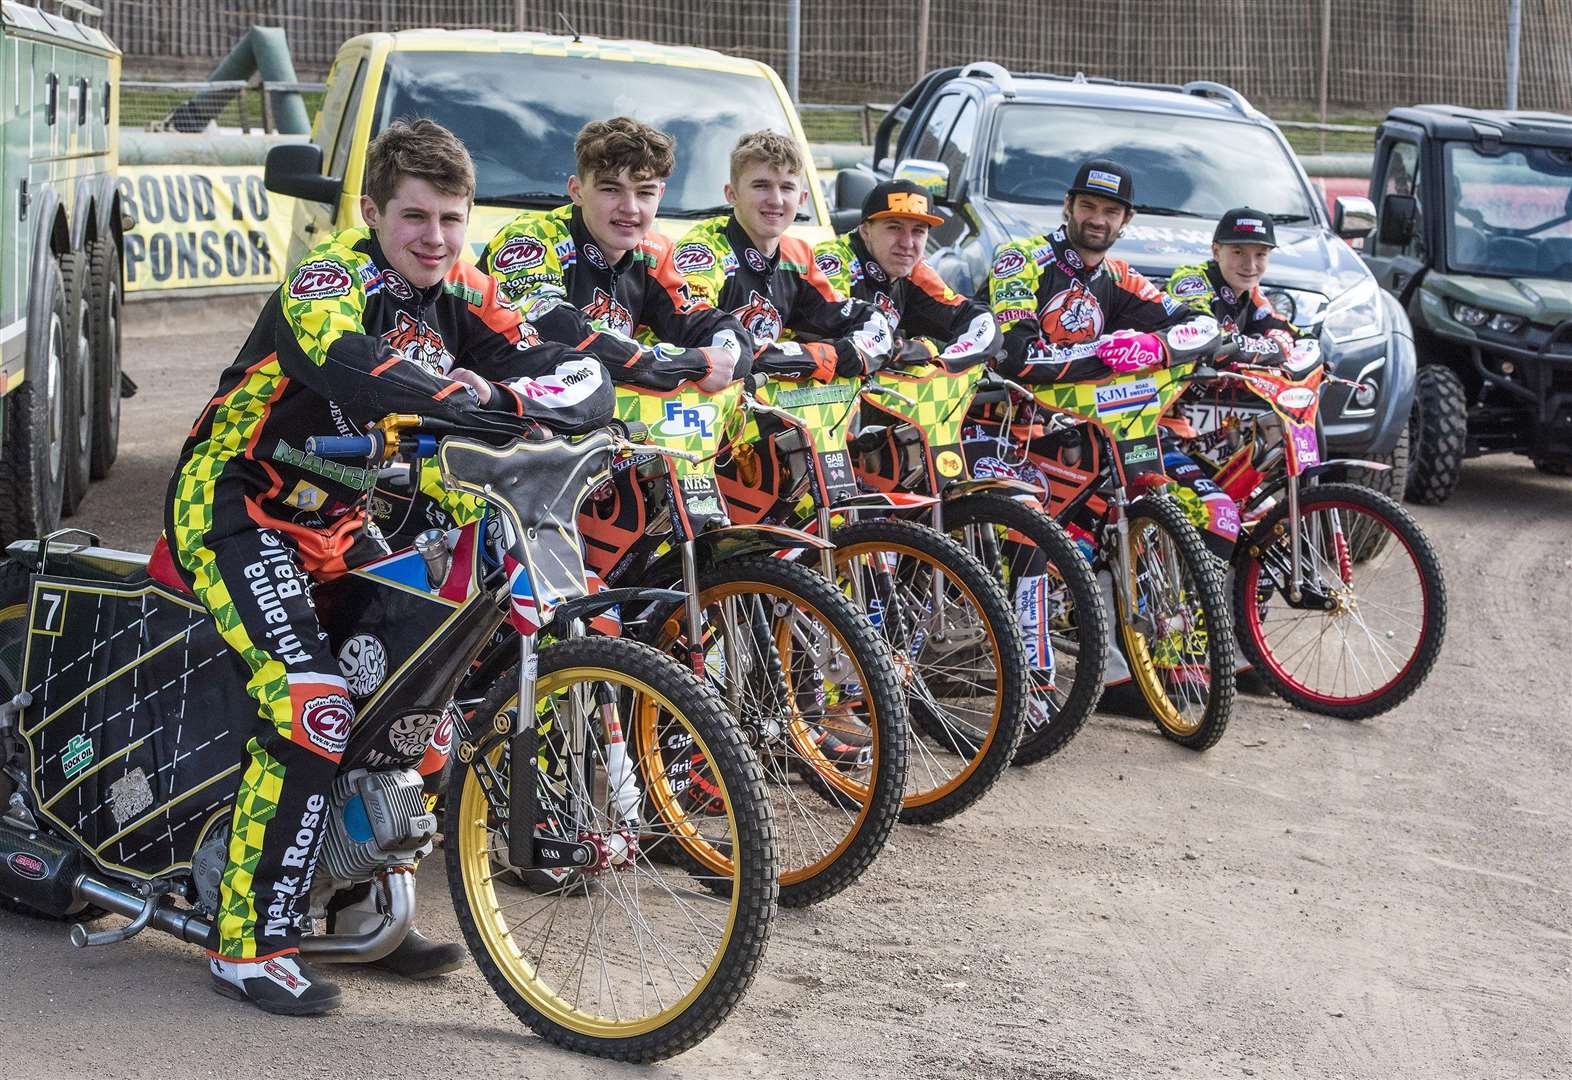 Team's effort recognised with shared Rider of the Year award